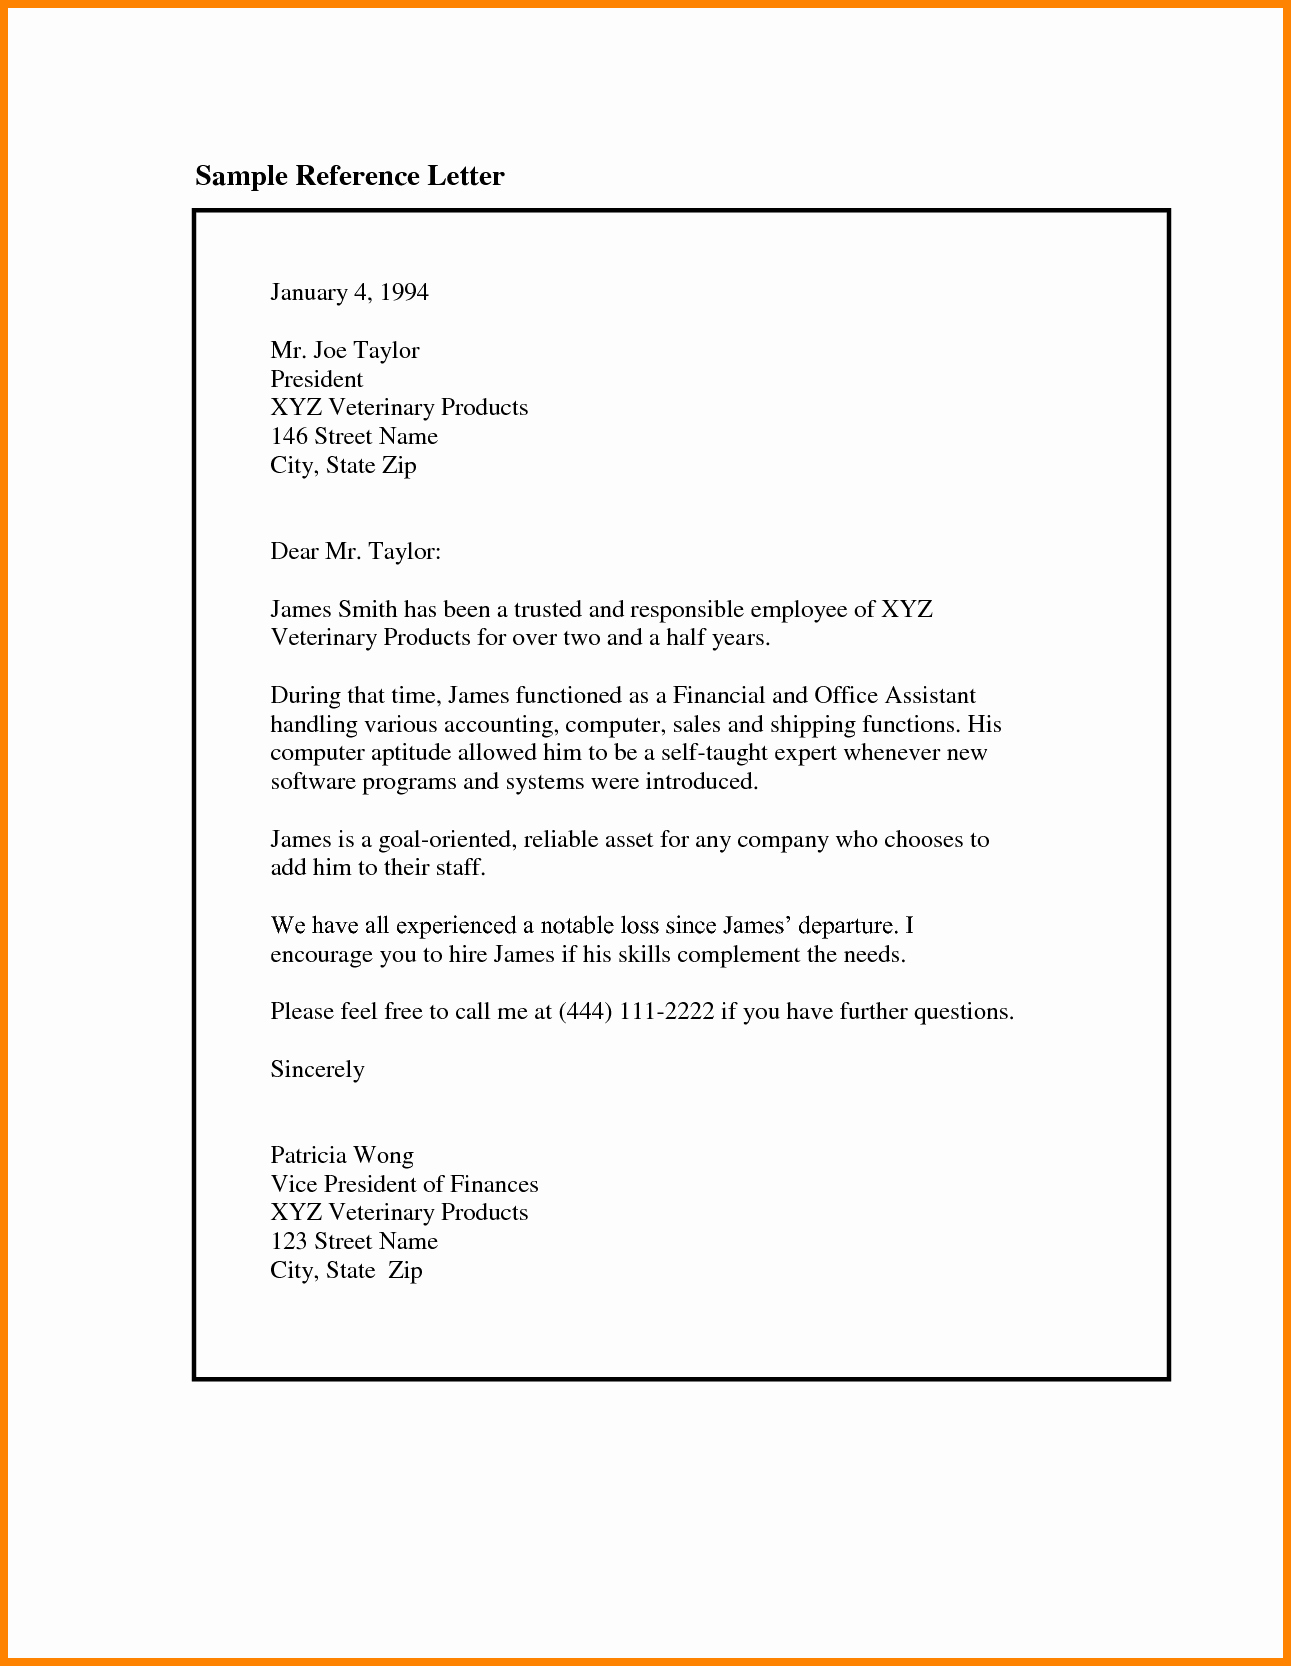 Samples Of Employee Reference Letters Awesome 5 Job Letter Of Re Mendation Sample